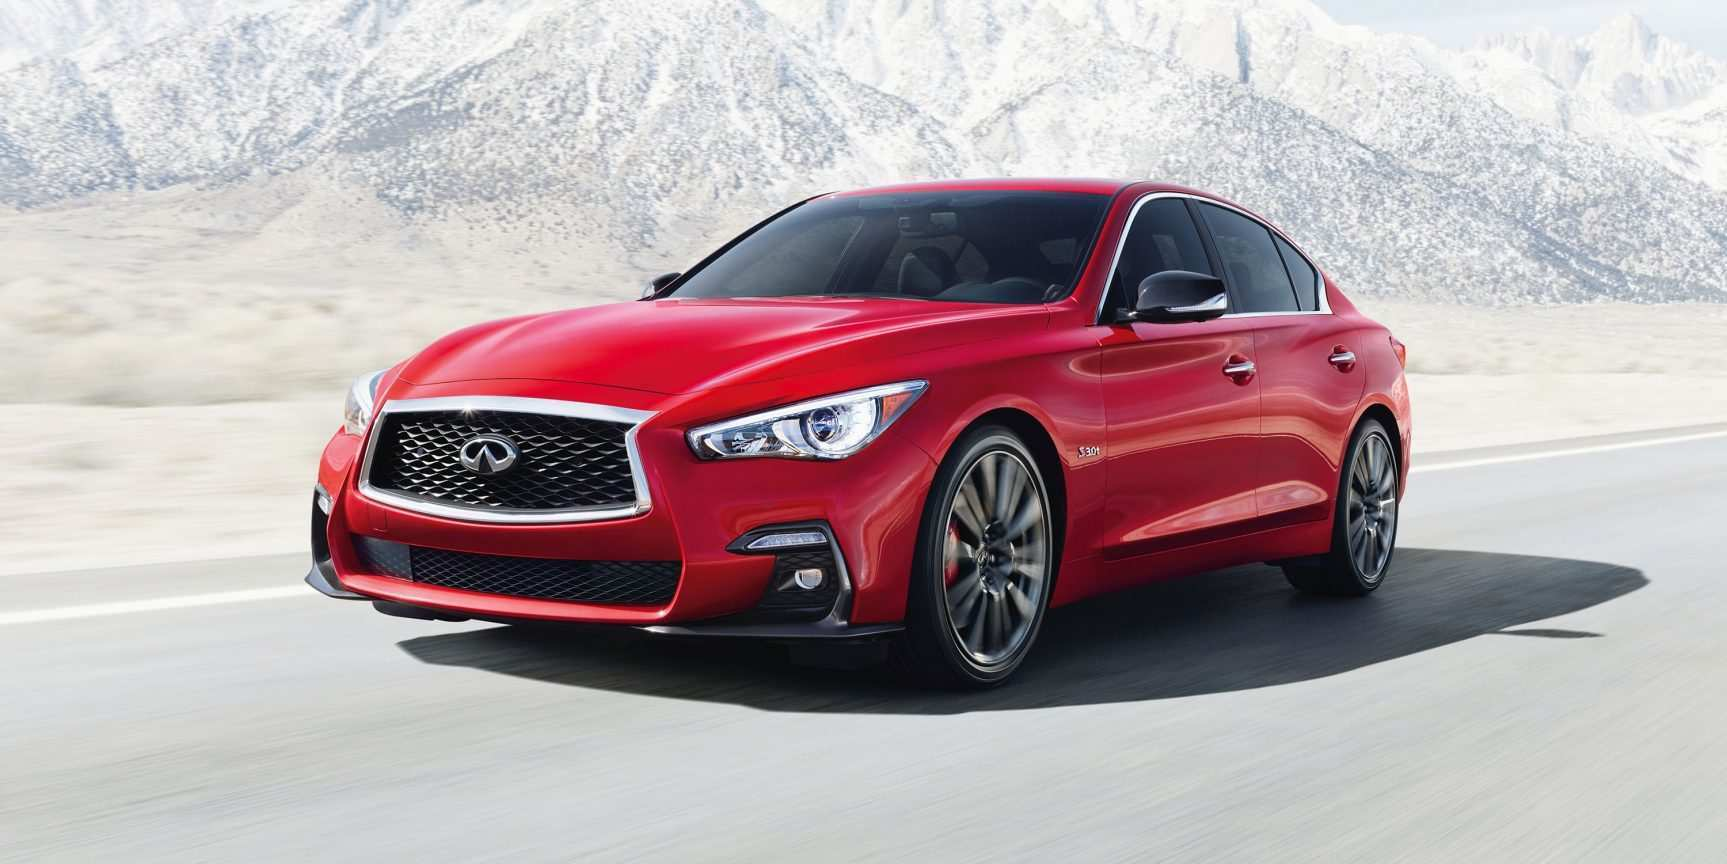 35 Gallery of The Infiniti Q50 2019 Price Engine Images for The Infiniti Q50 2019 Price Engine